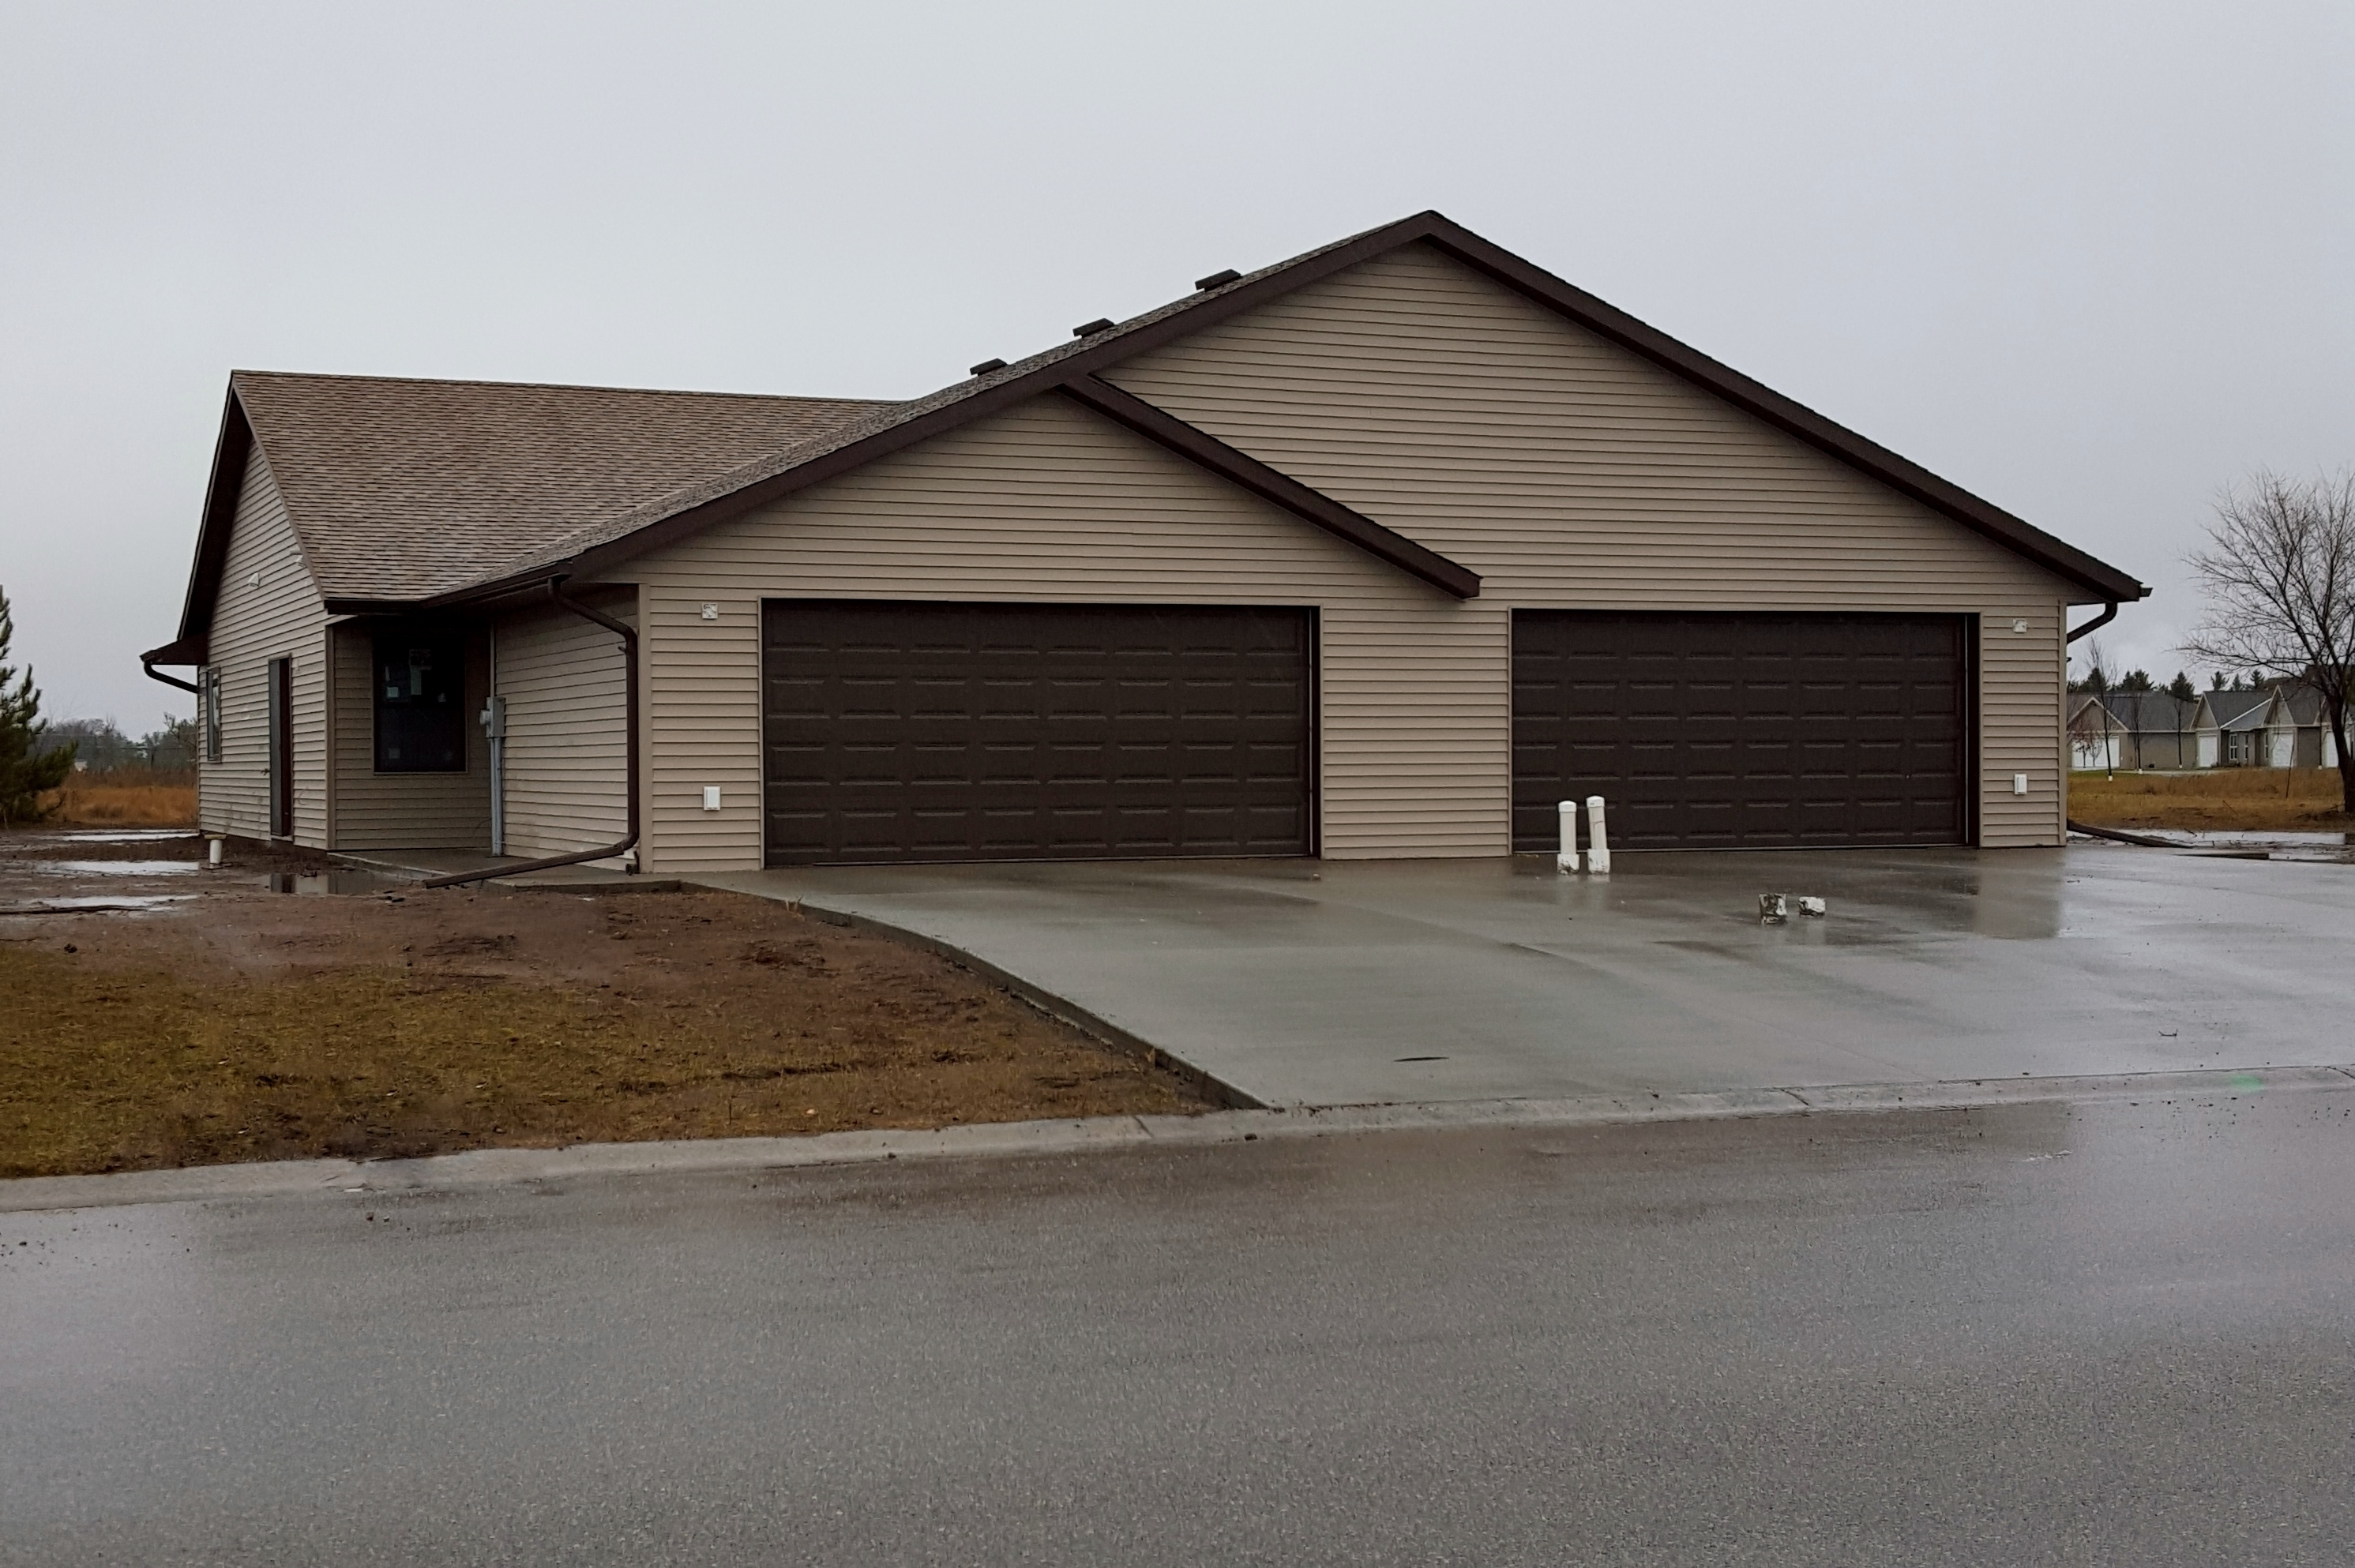 804 7th Street SW, Perham, Minnesota 56573